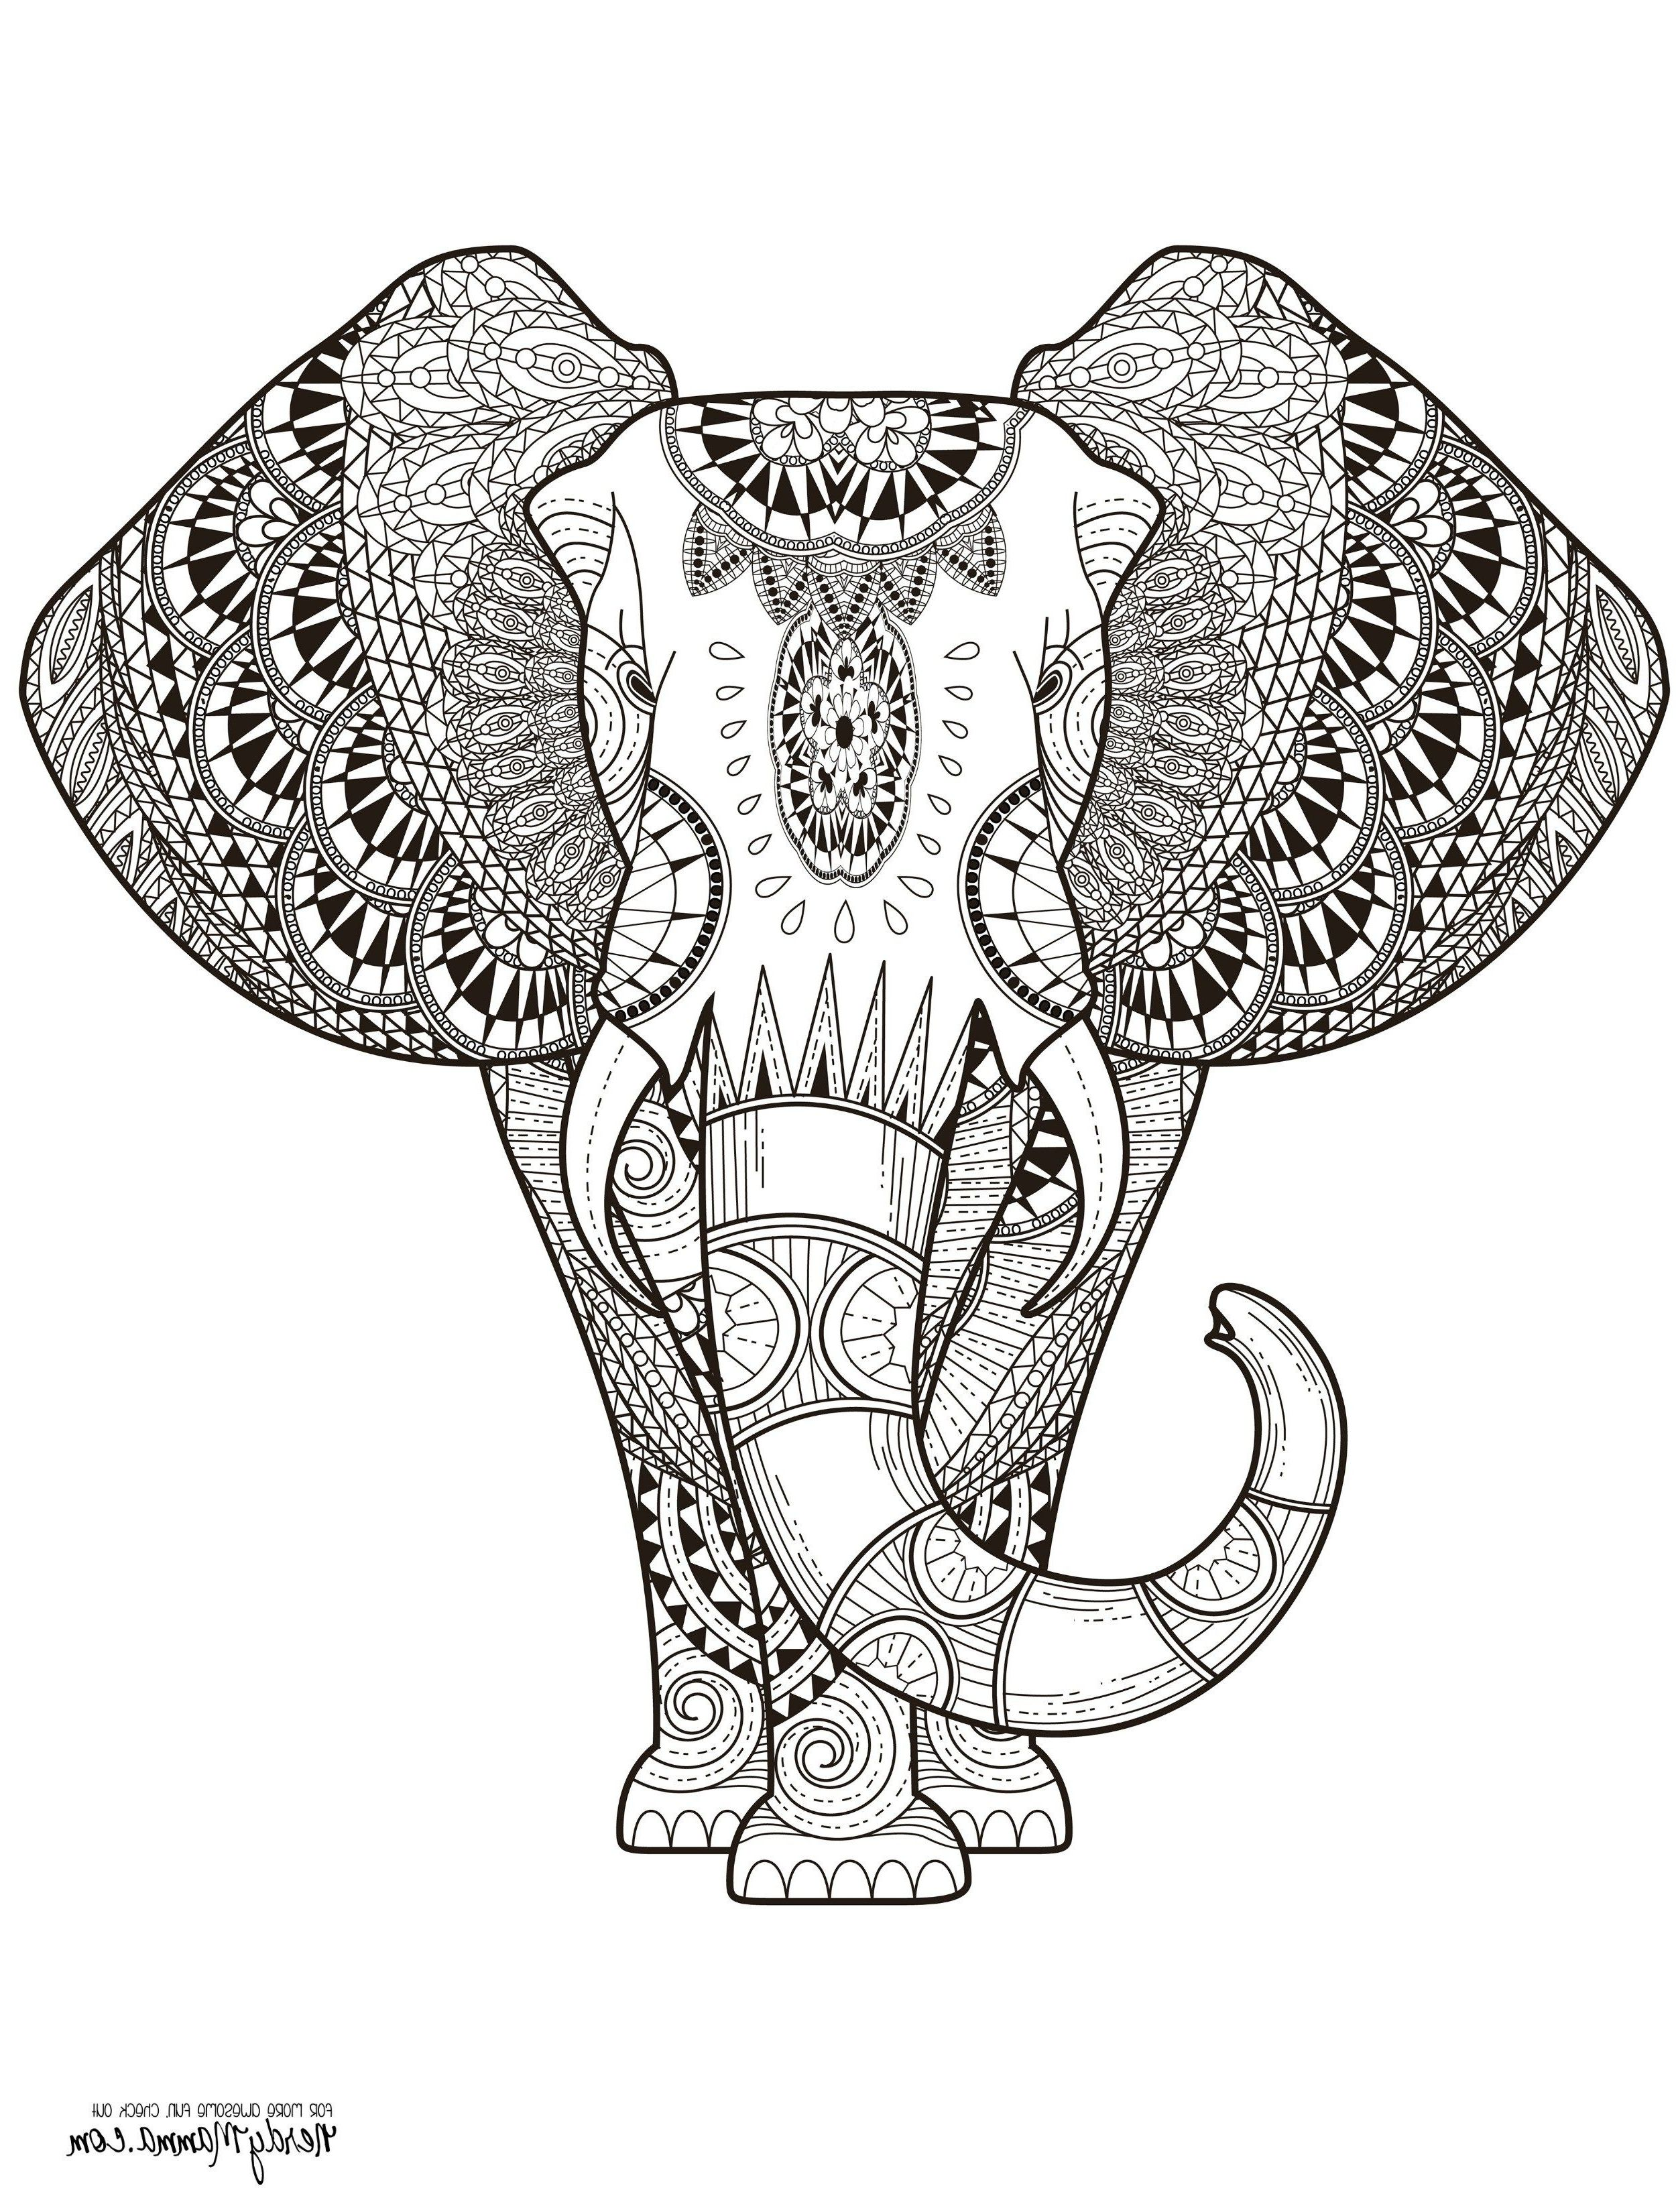 Elephant Mandala Coloring Pages Mandala Coloring Pages Elephant Coloring Page Paisley Coloring Pages